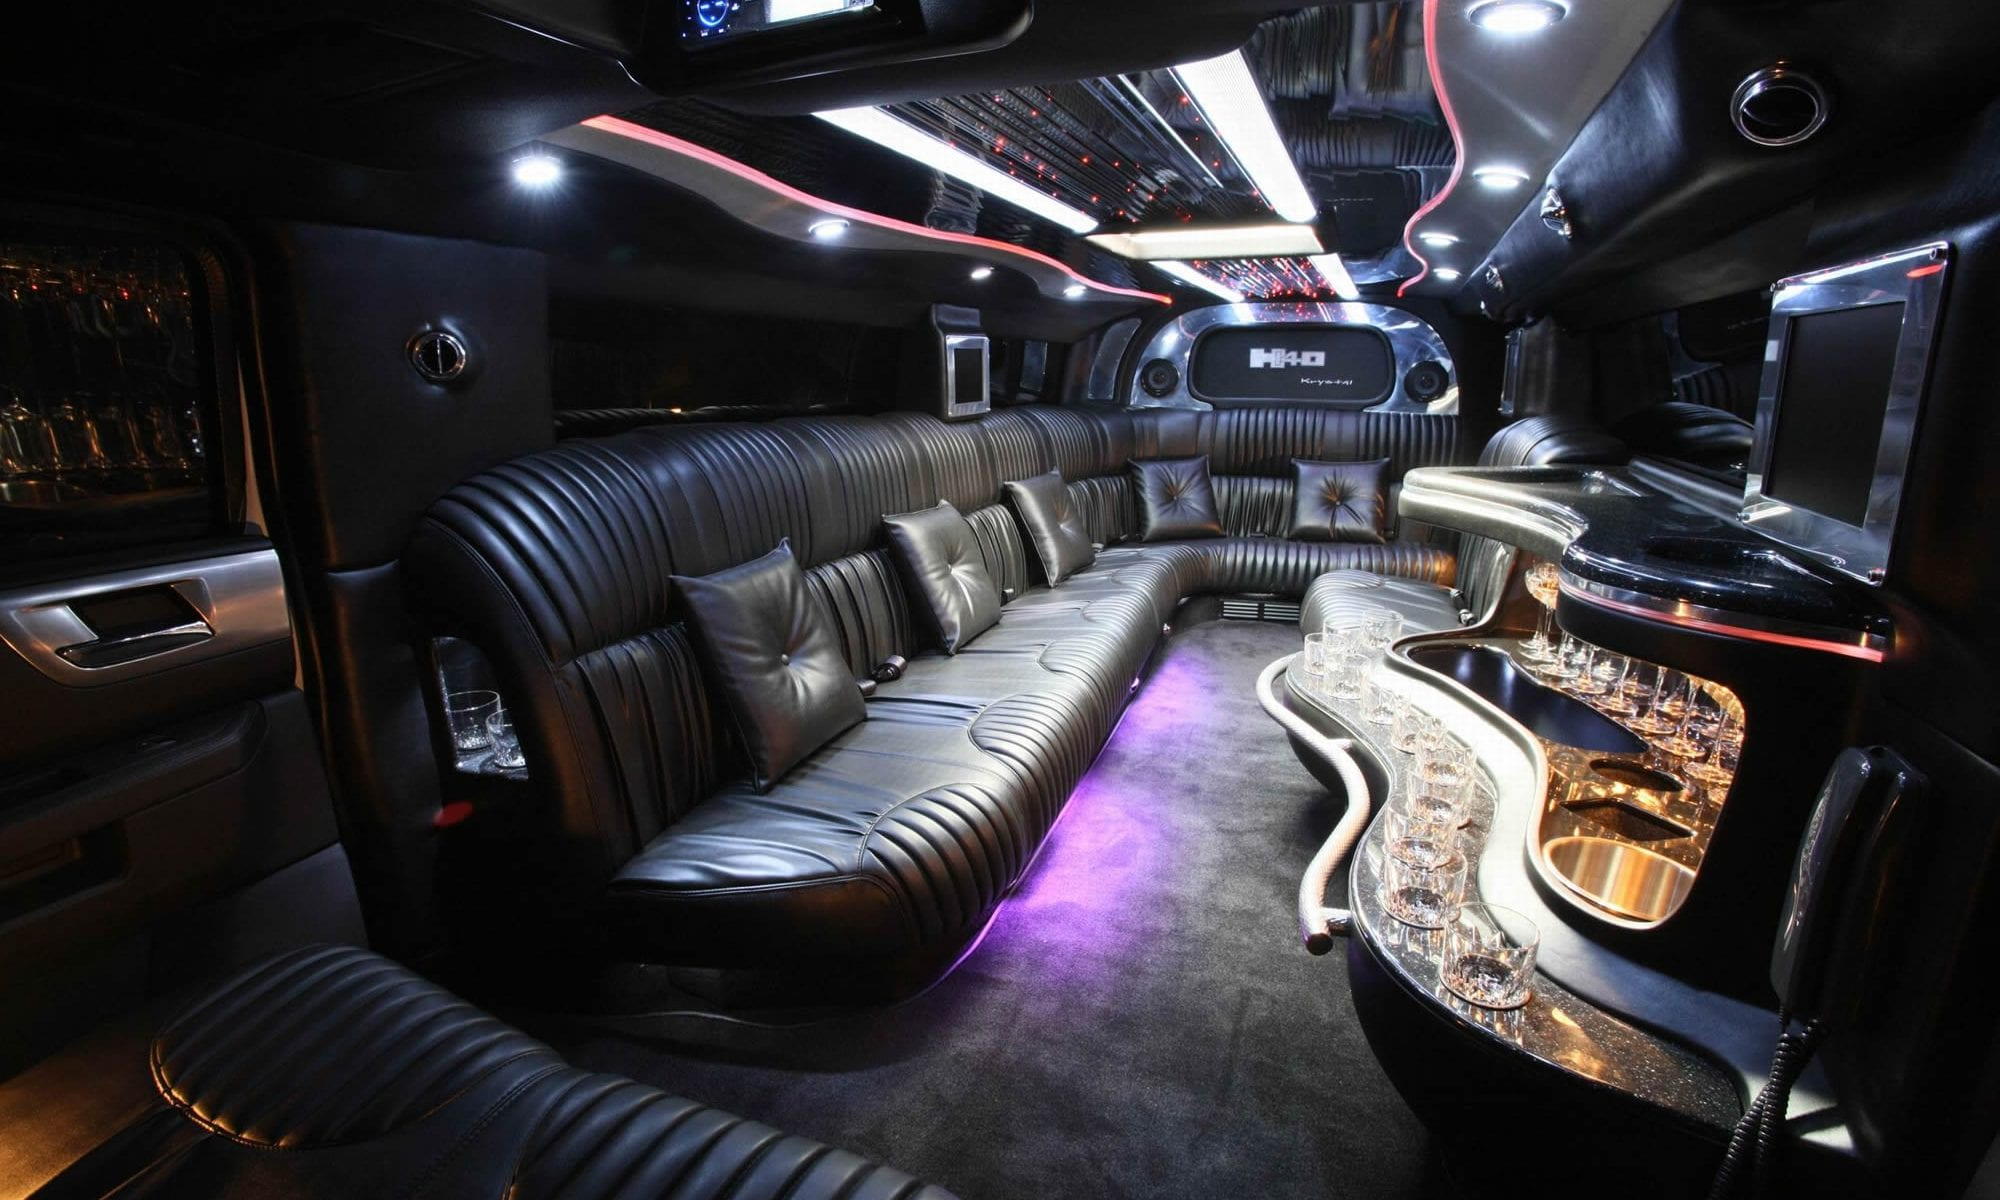 About Us - Prom Limo Rentals - Prom Limo Long Island